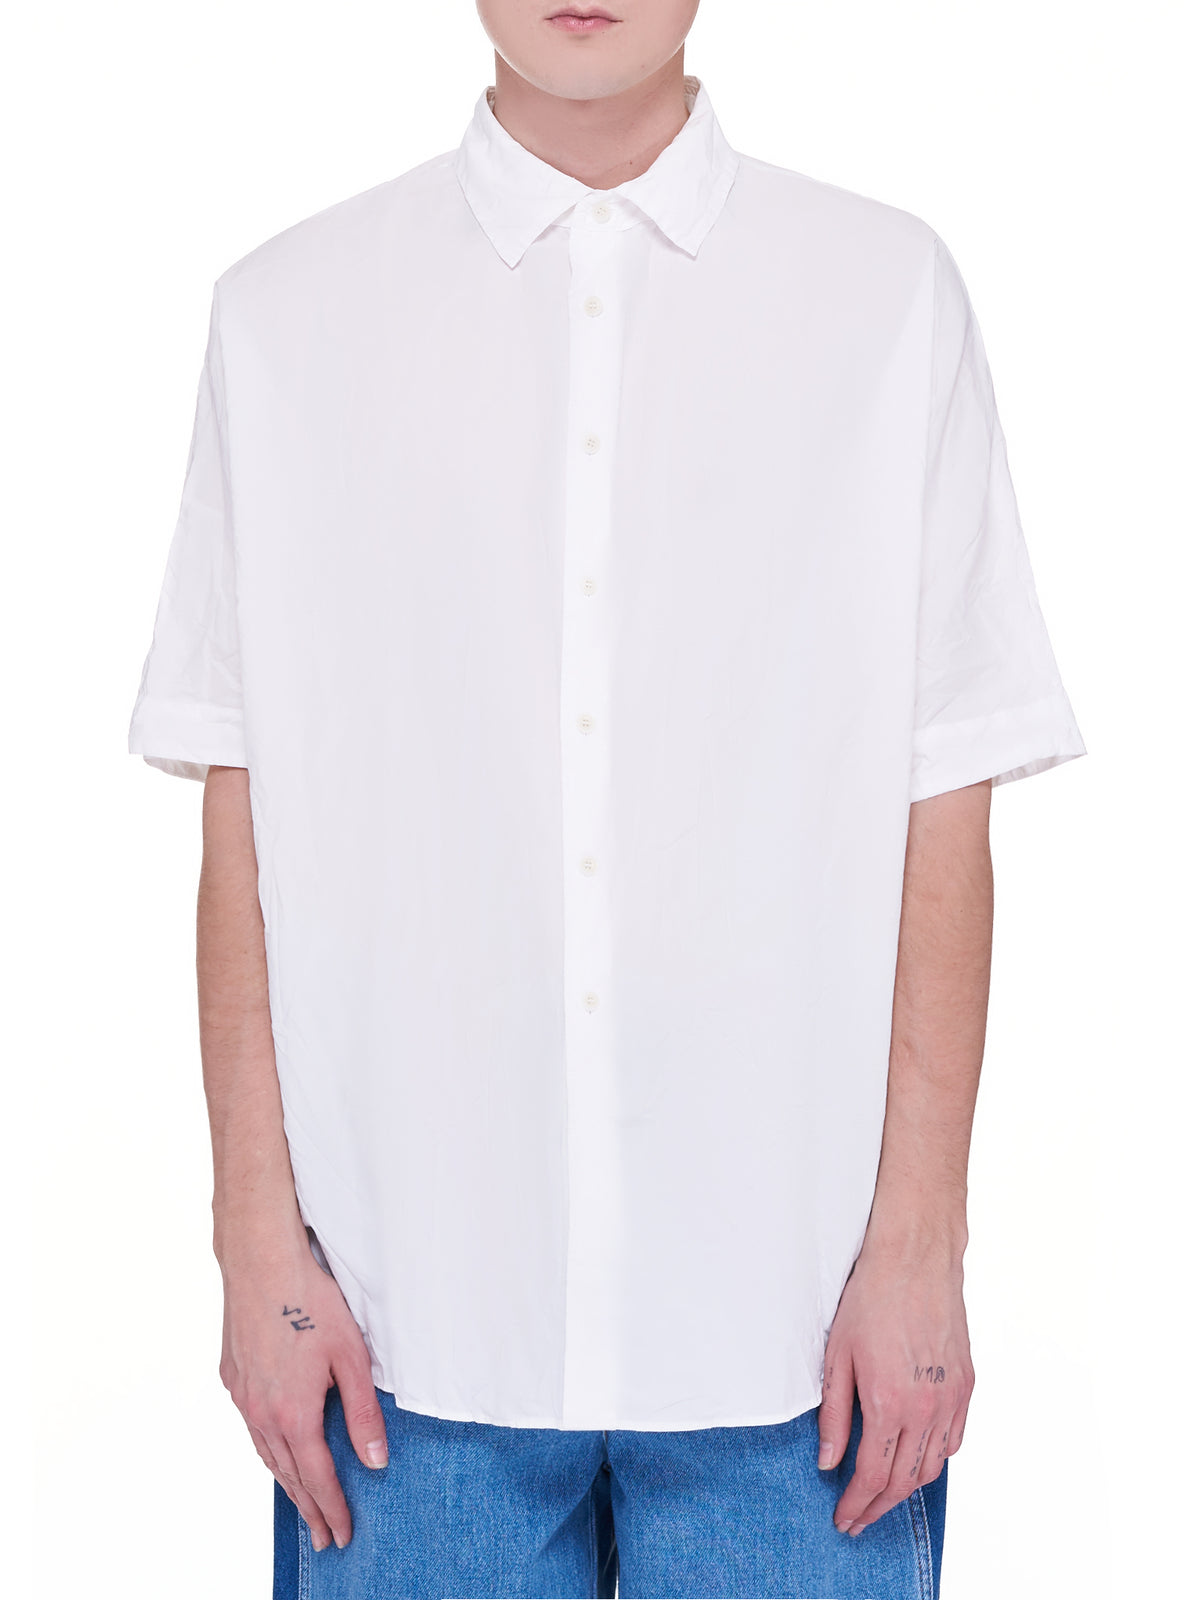 Waga Shirt (16HC209-WHITE)